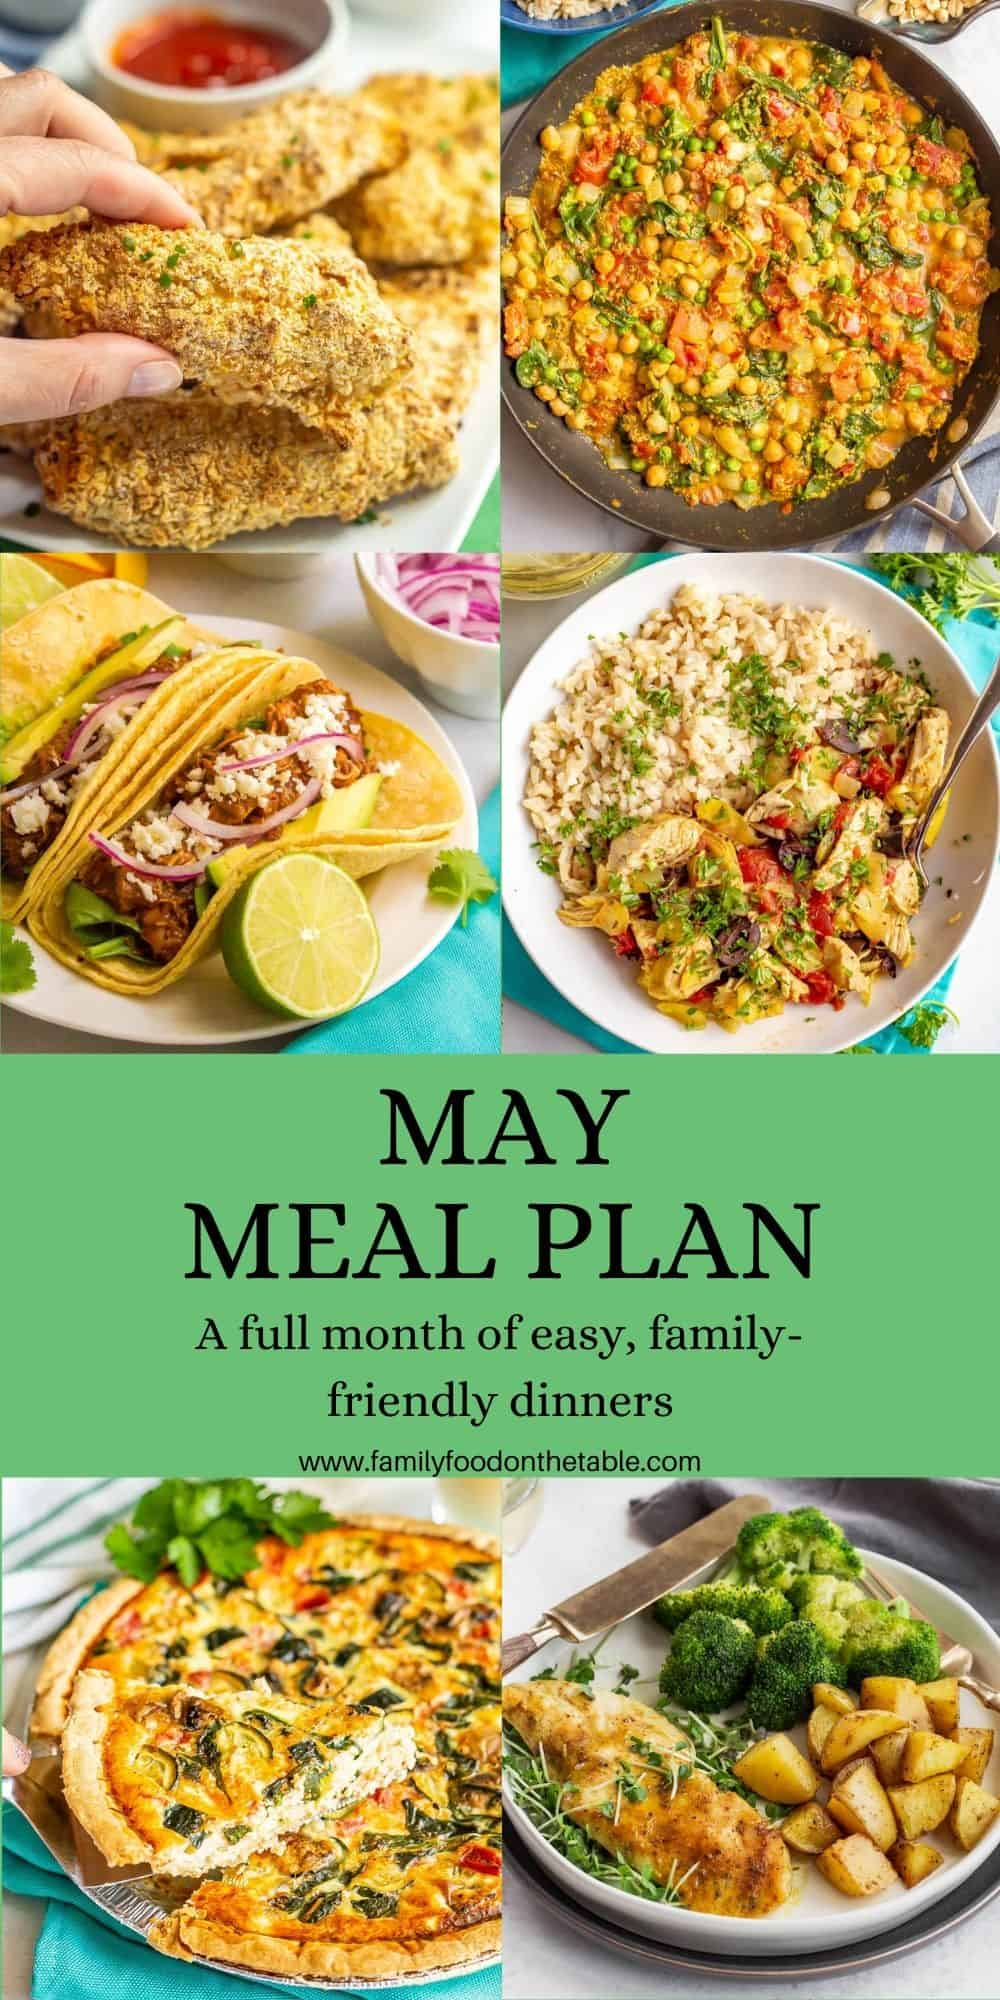 A collage of dinner photos with a text block for a May meal plan